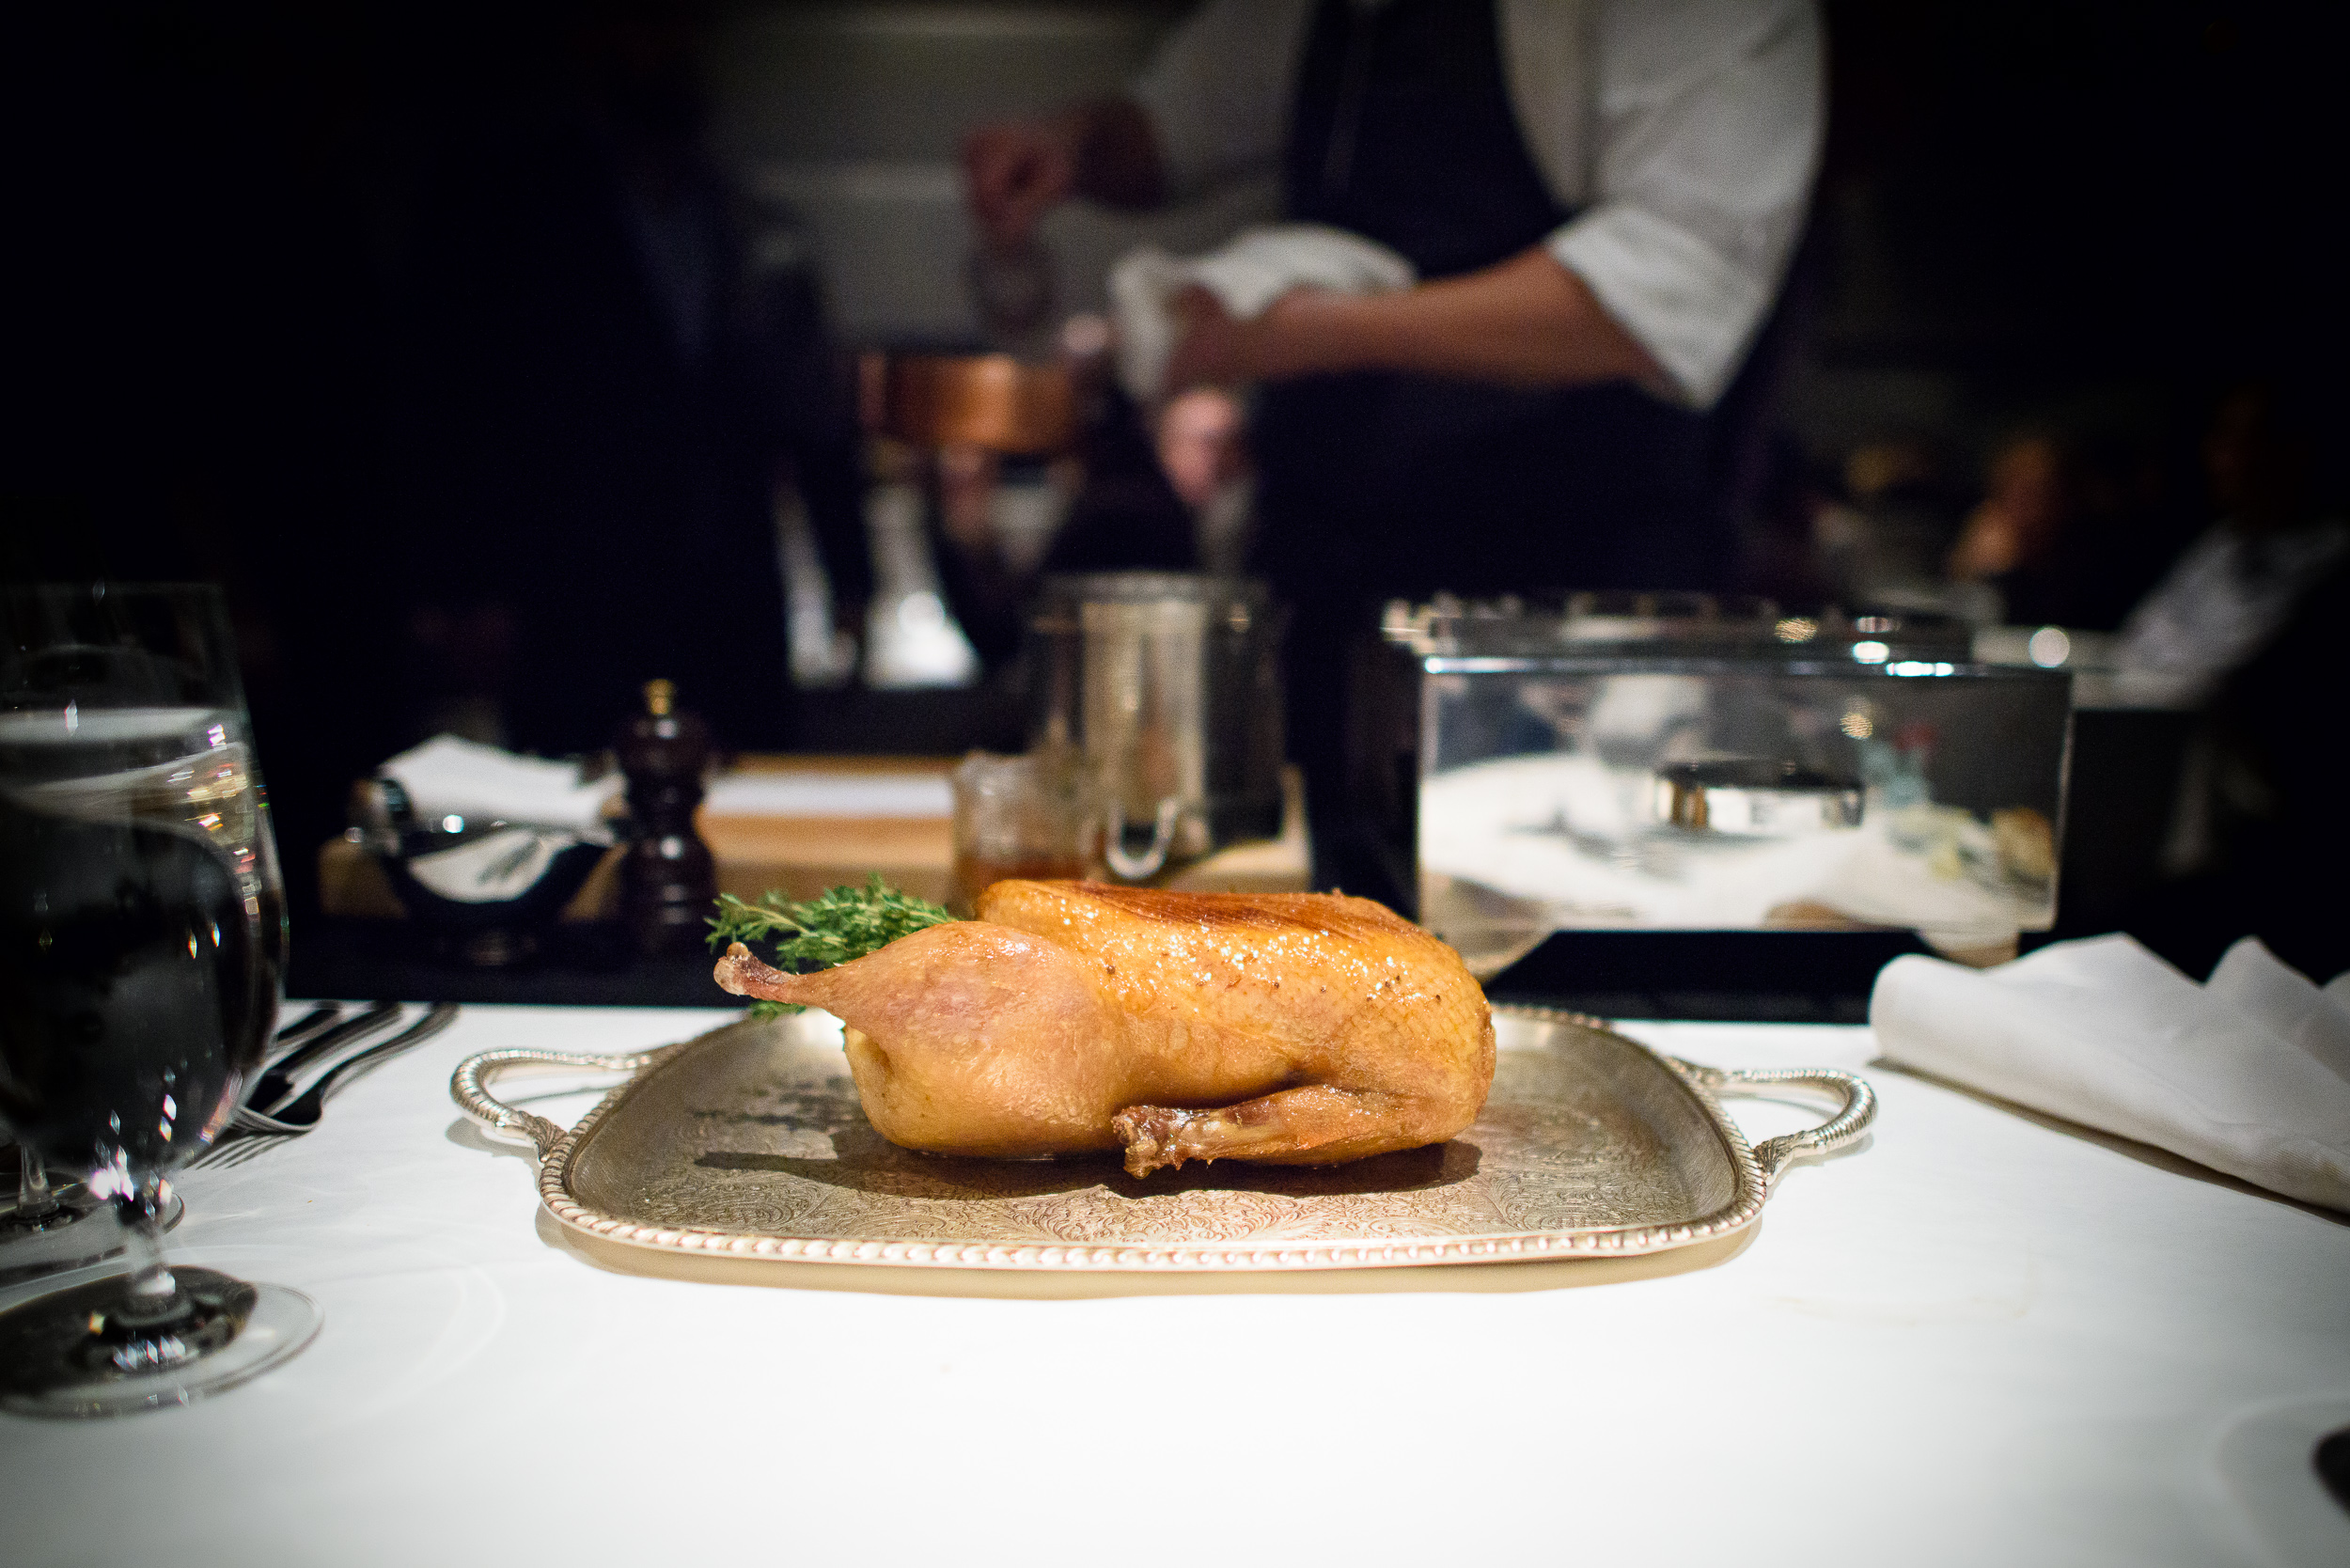 11th Course: Whole roasted duck